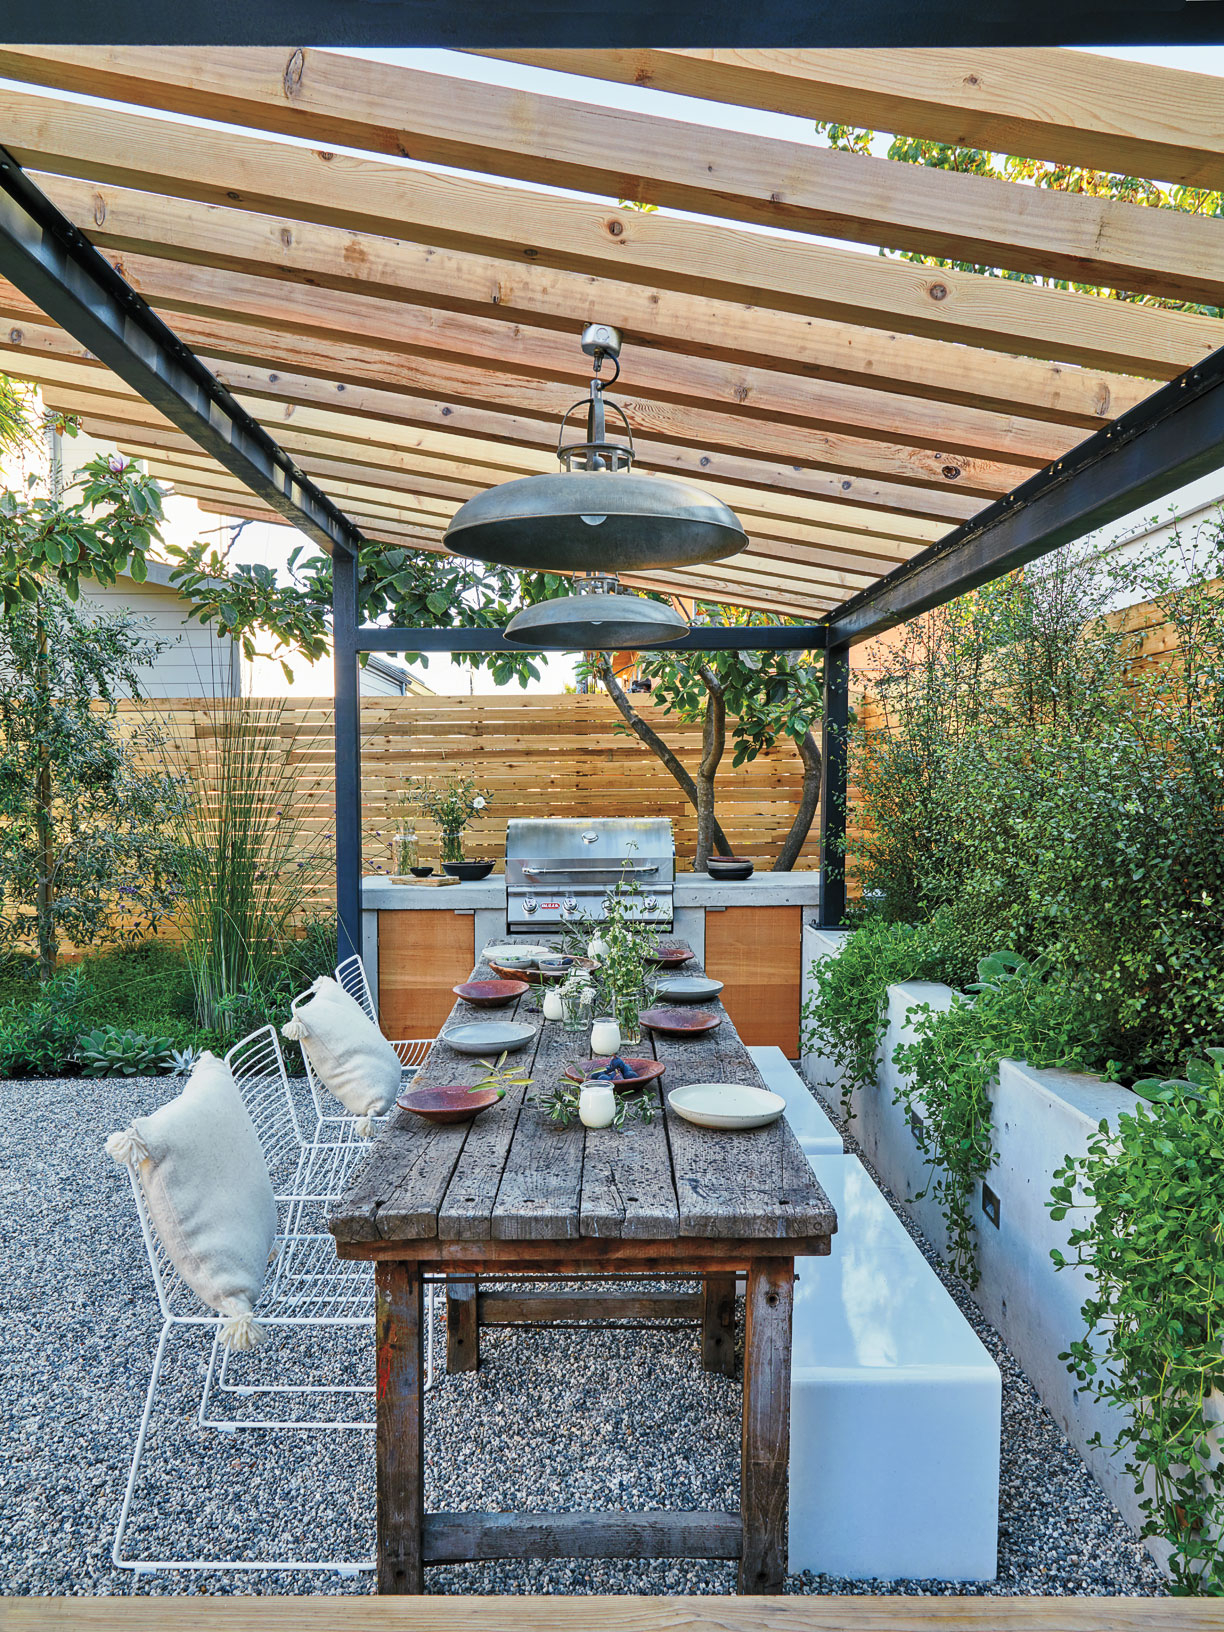 Transform A Yard With These Genius Hardscape Ideas Sunset Magazine in 10 Smart Ways How to Make Backyard Hardscape Ideas